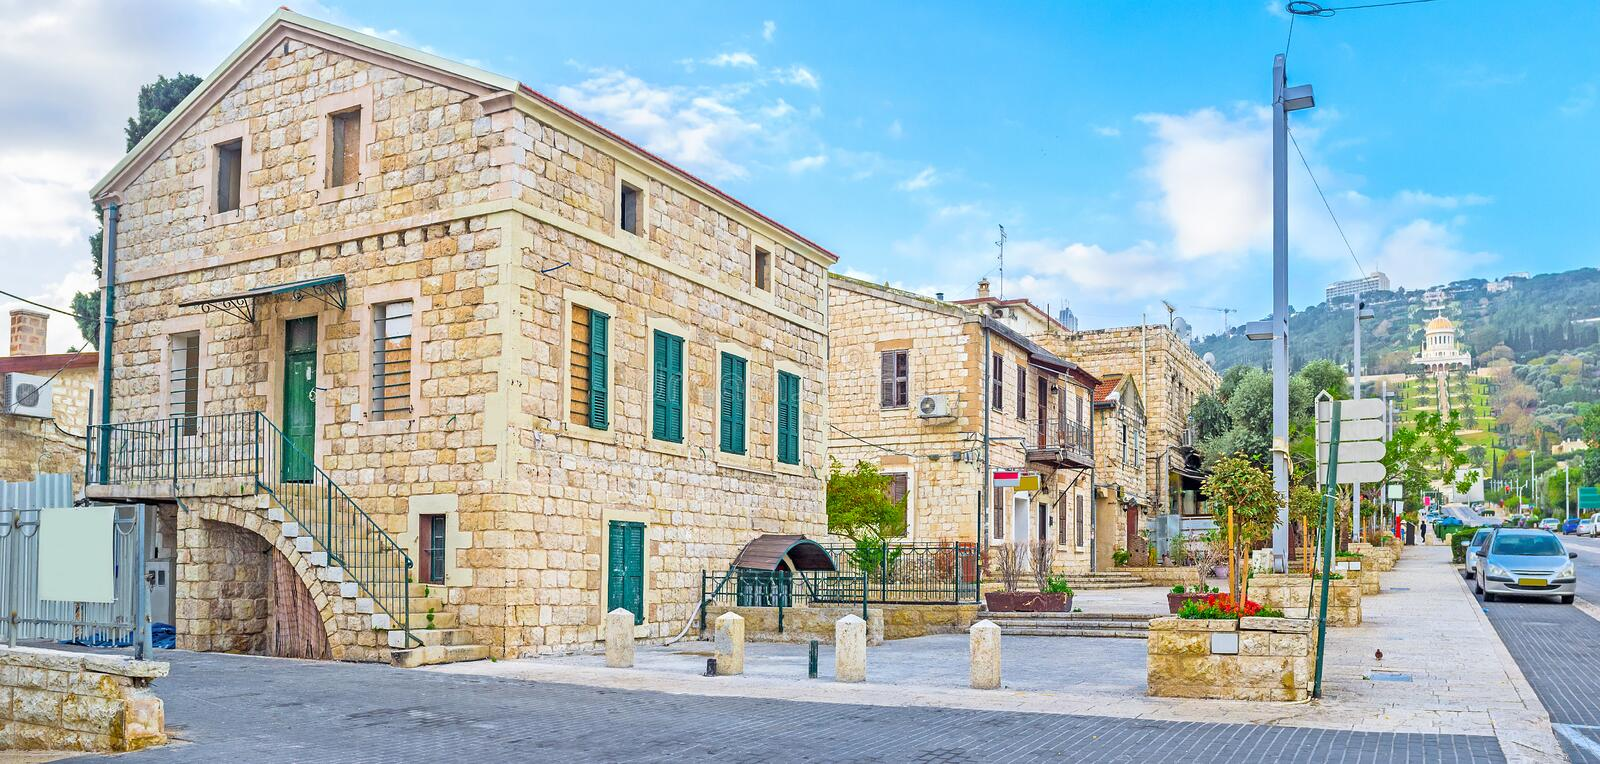 The old houses in Haifa stock photography